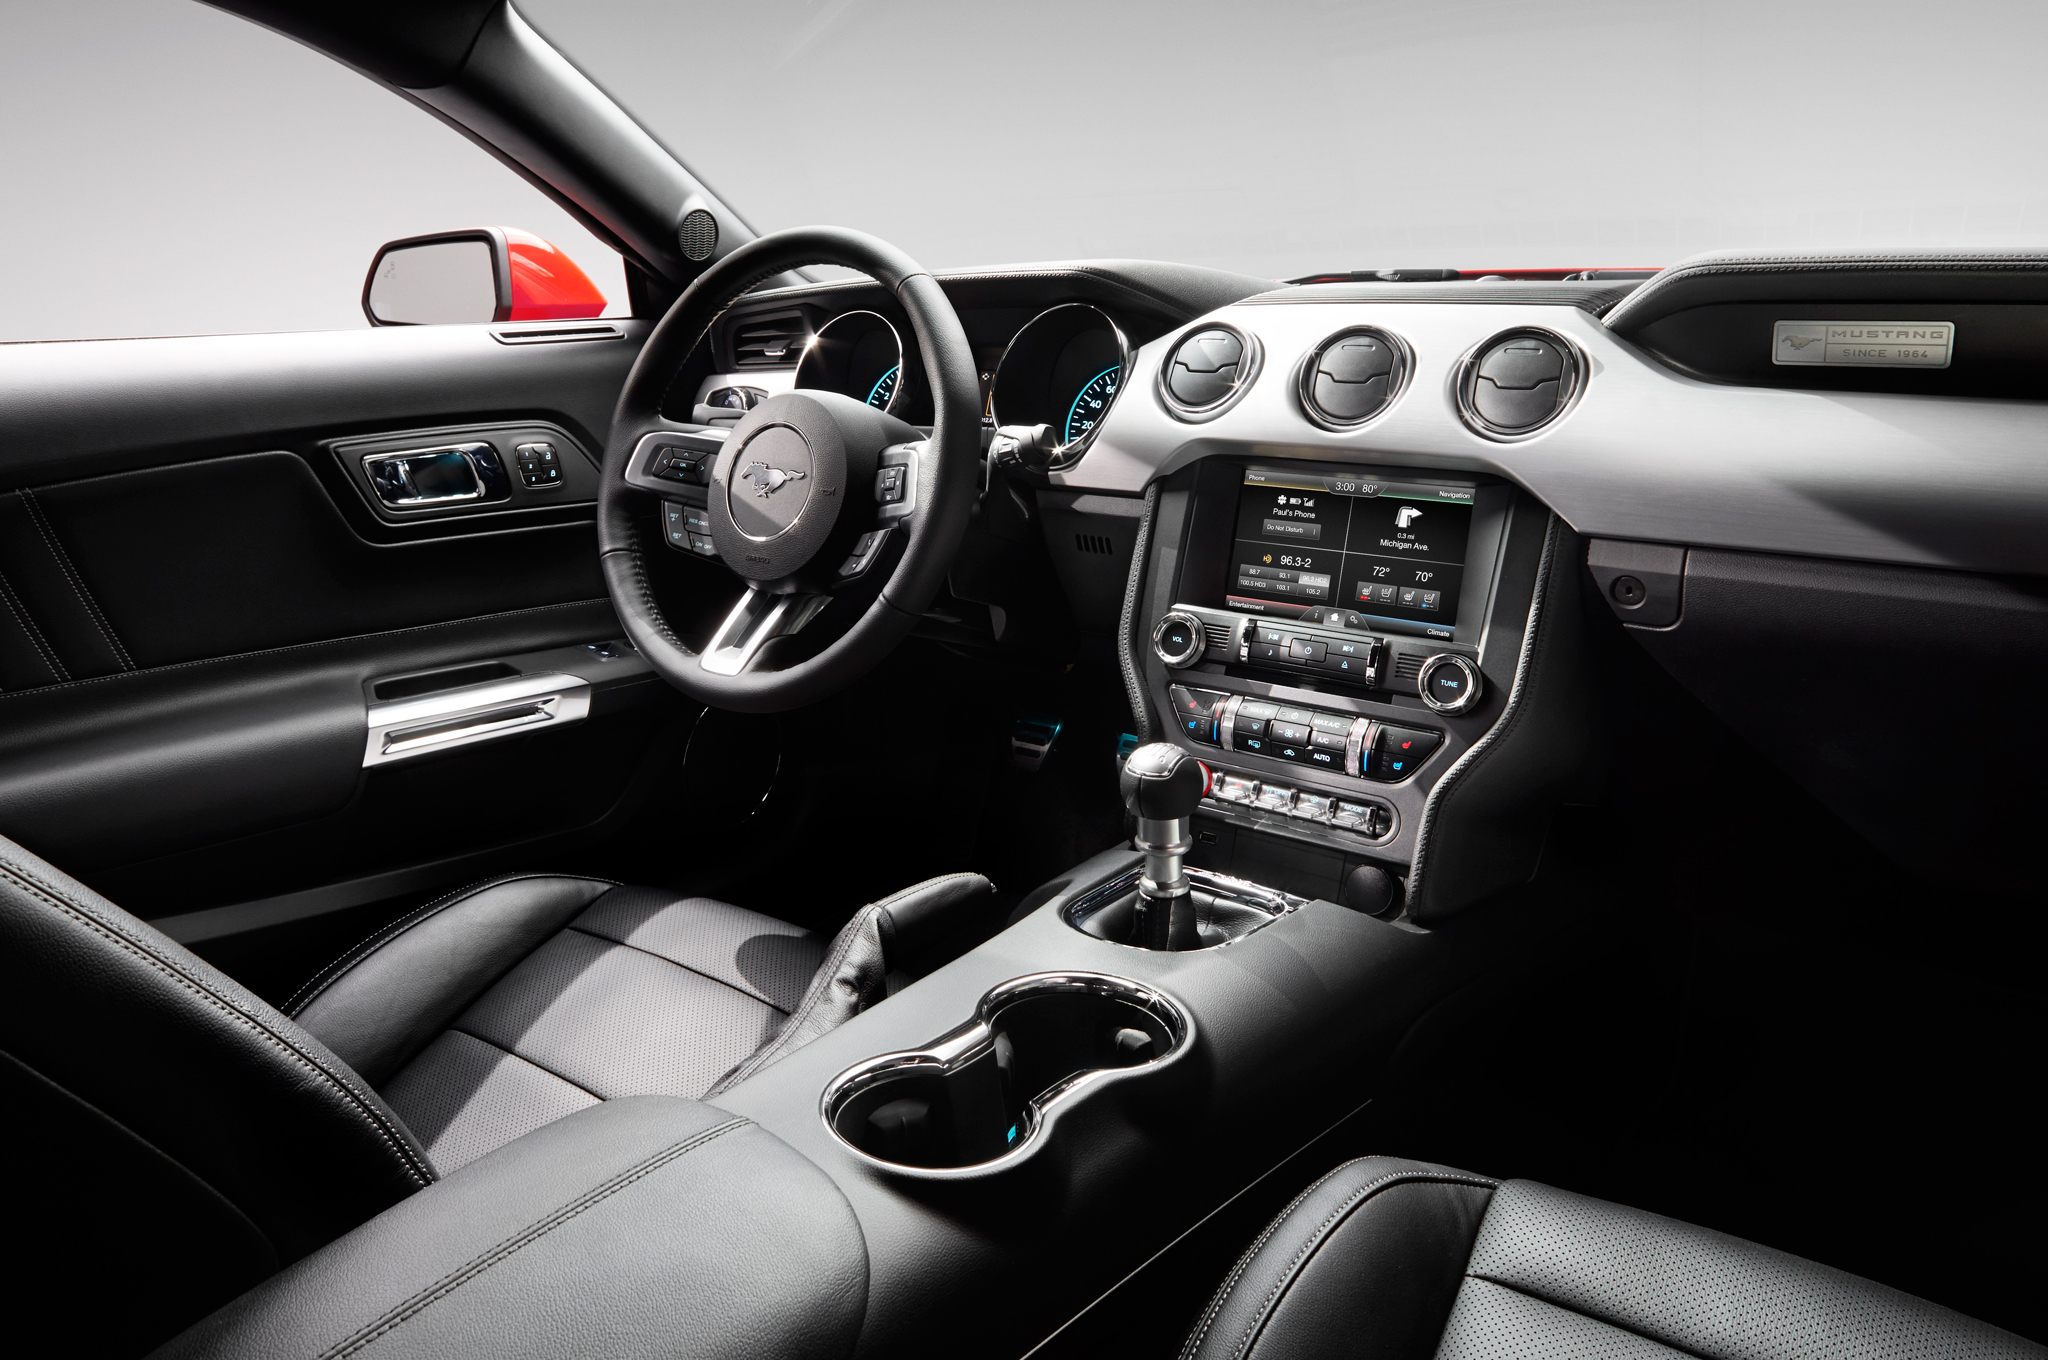 2015 Ford Mustang Gt Front Interior (Photo 11 of 30)